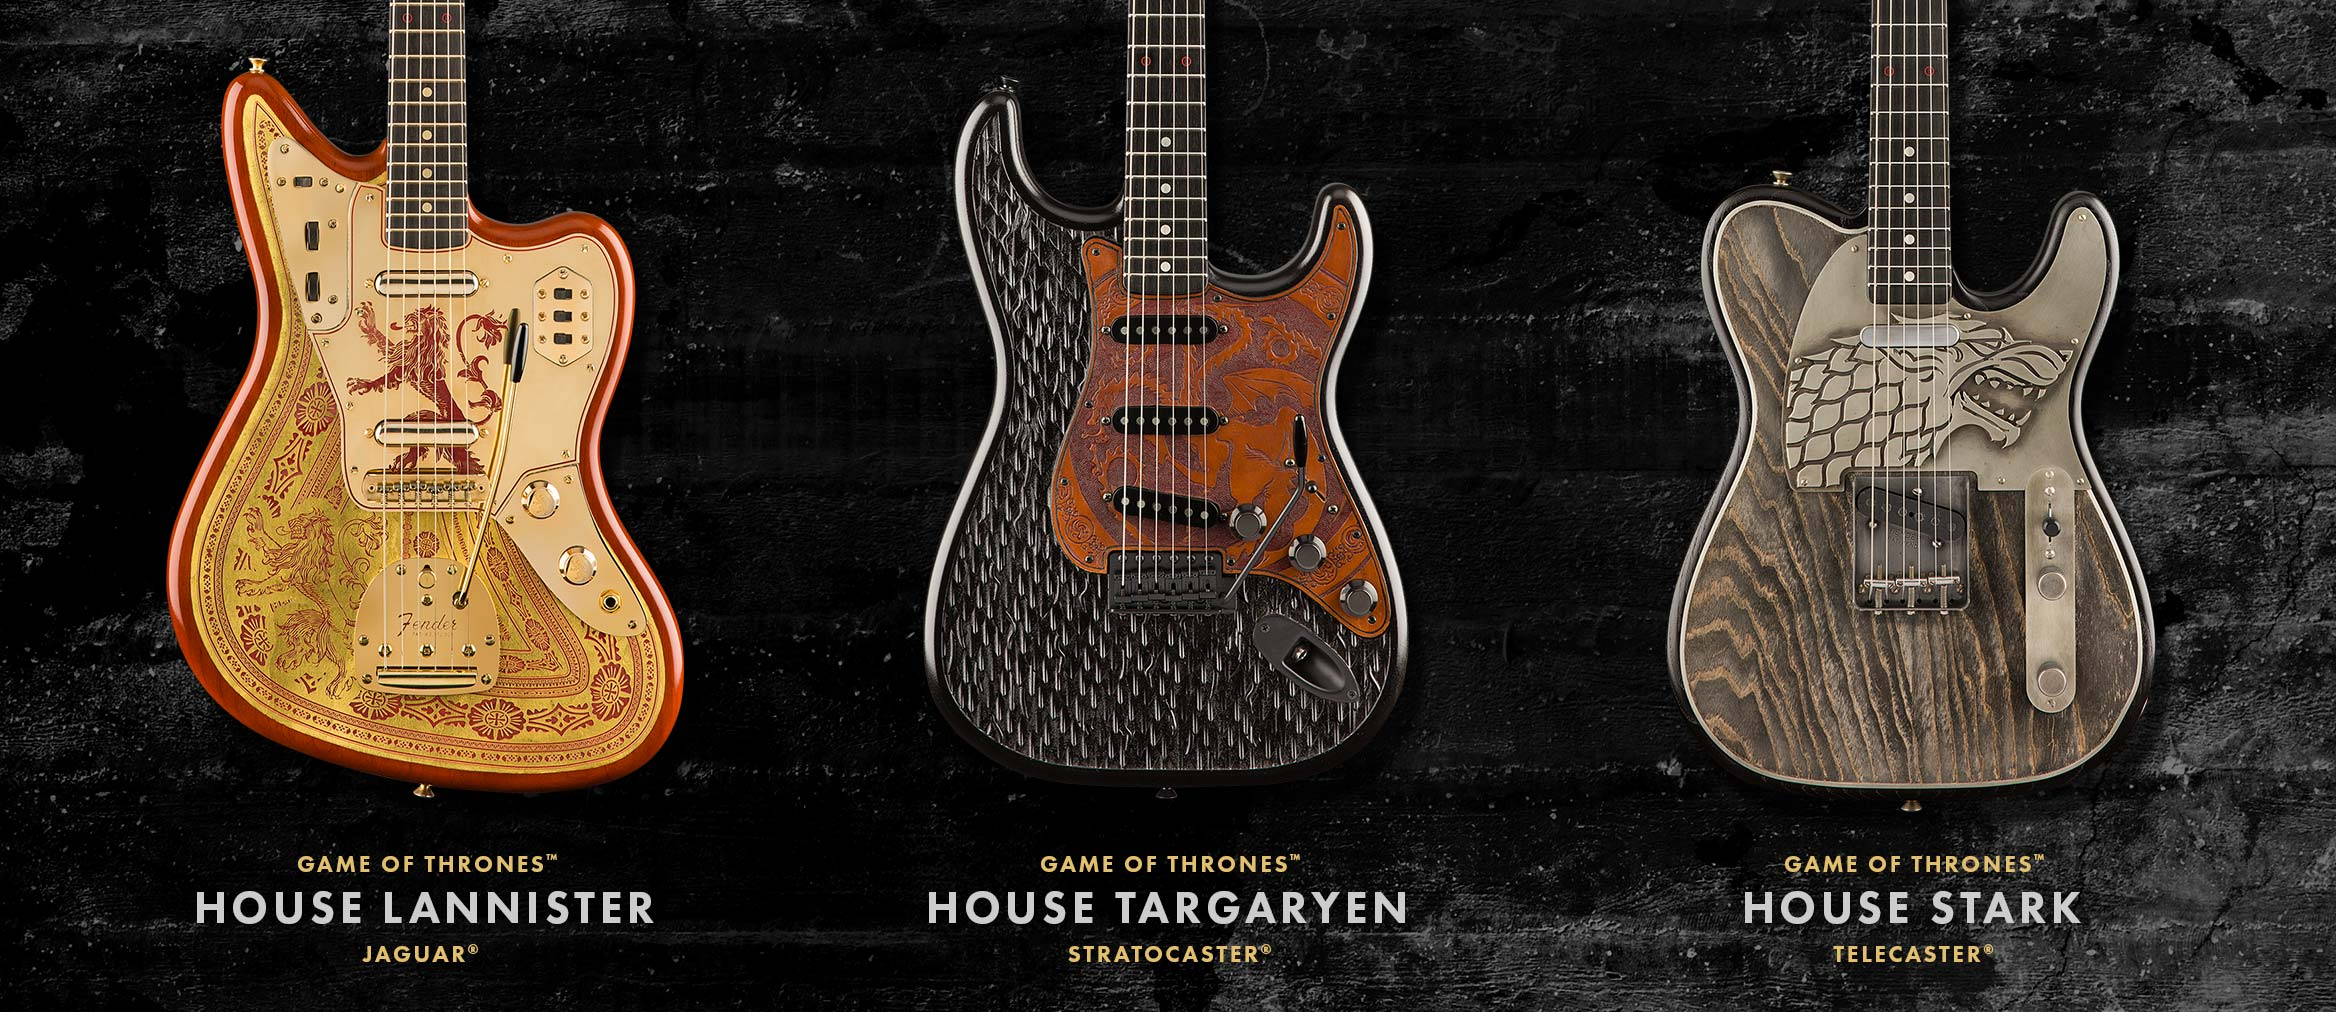 Fender Builds Three Custom Games of Thrones Guitars With Sigils From House Stark, Lannister and Targaryen